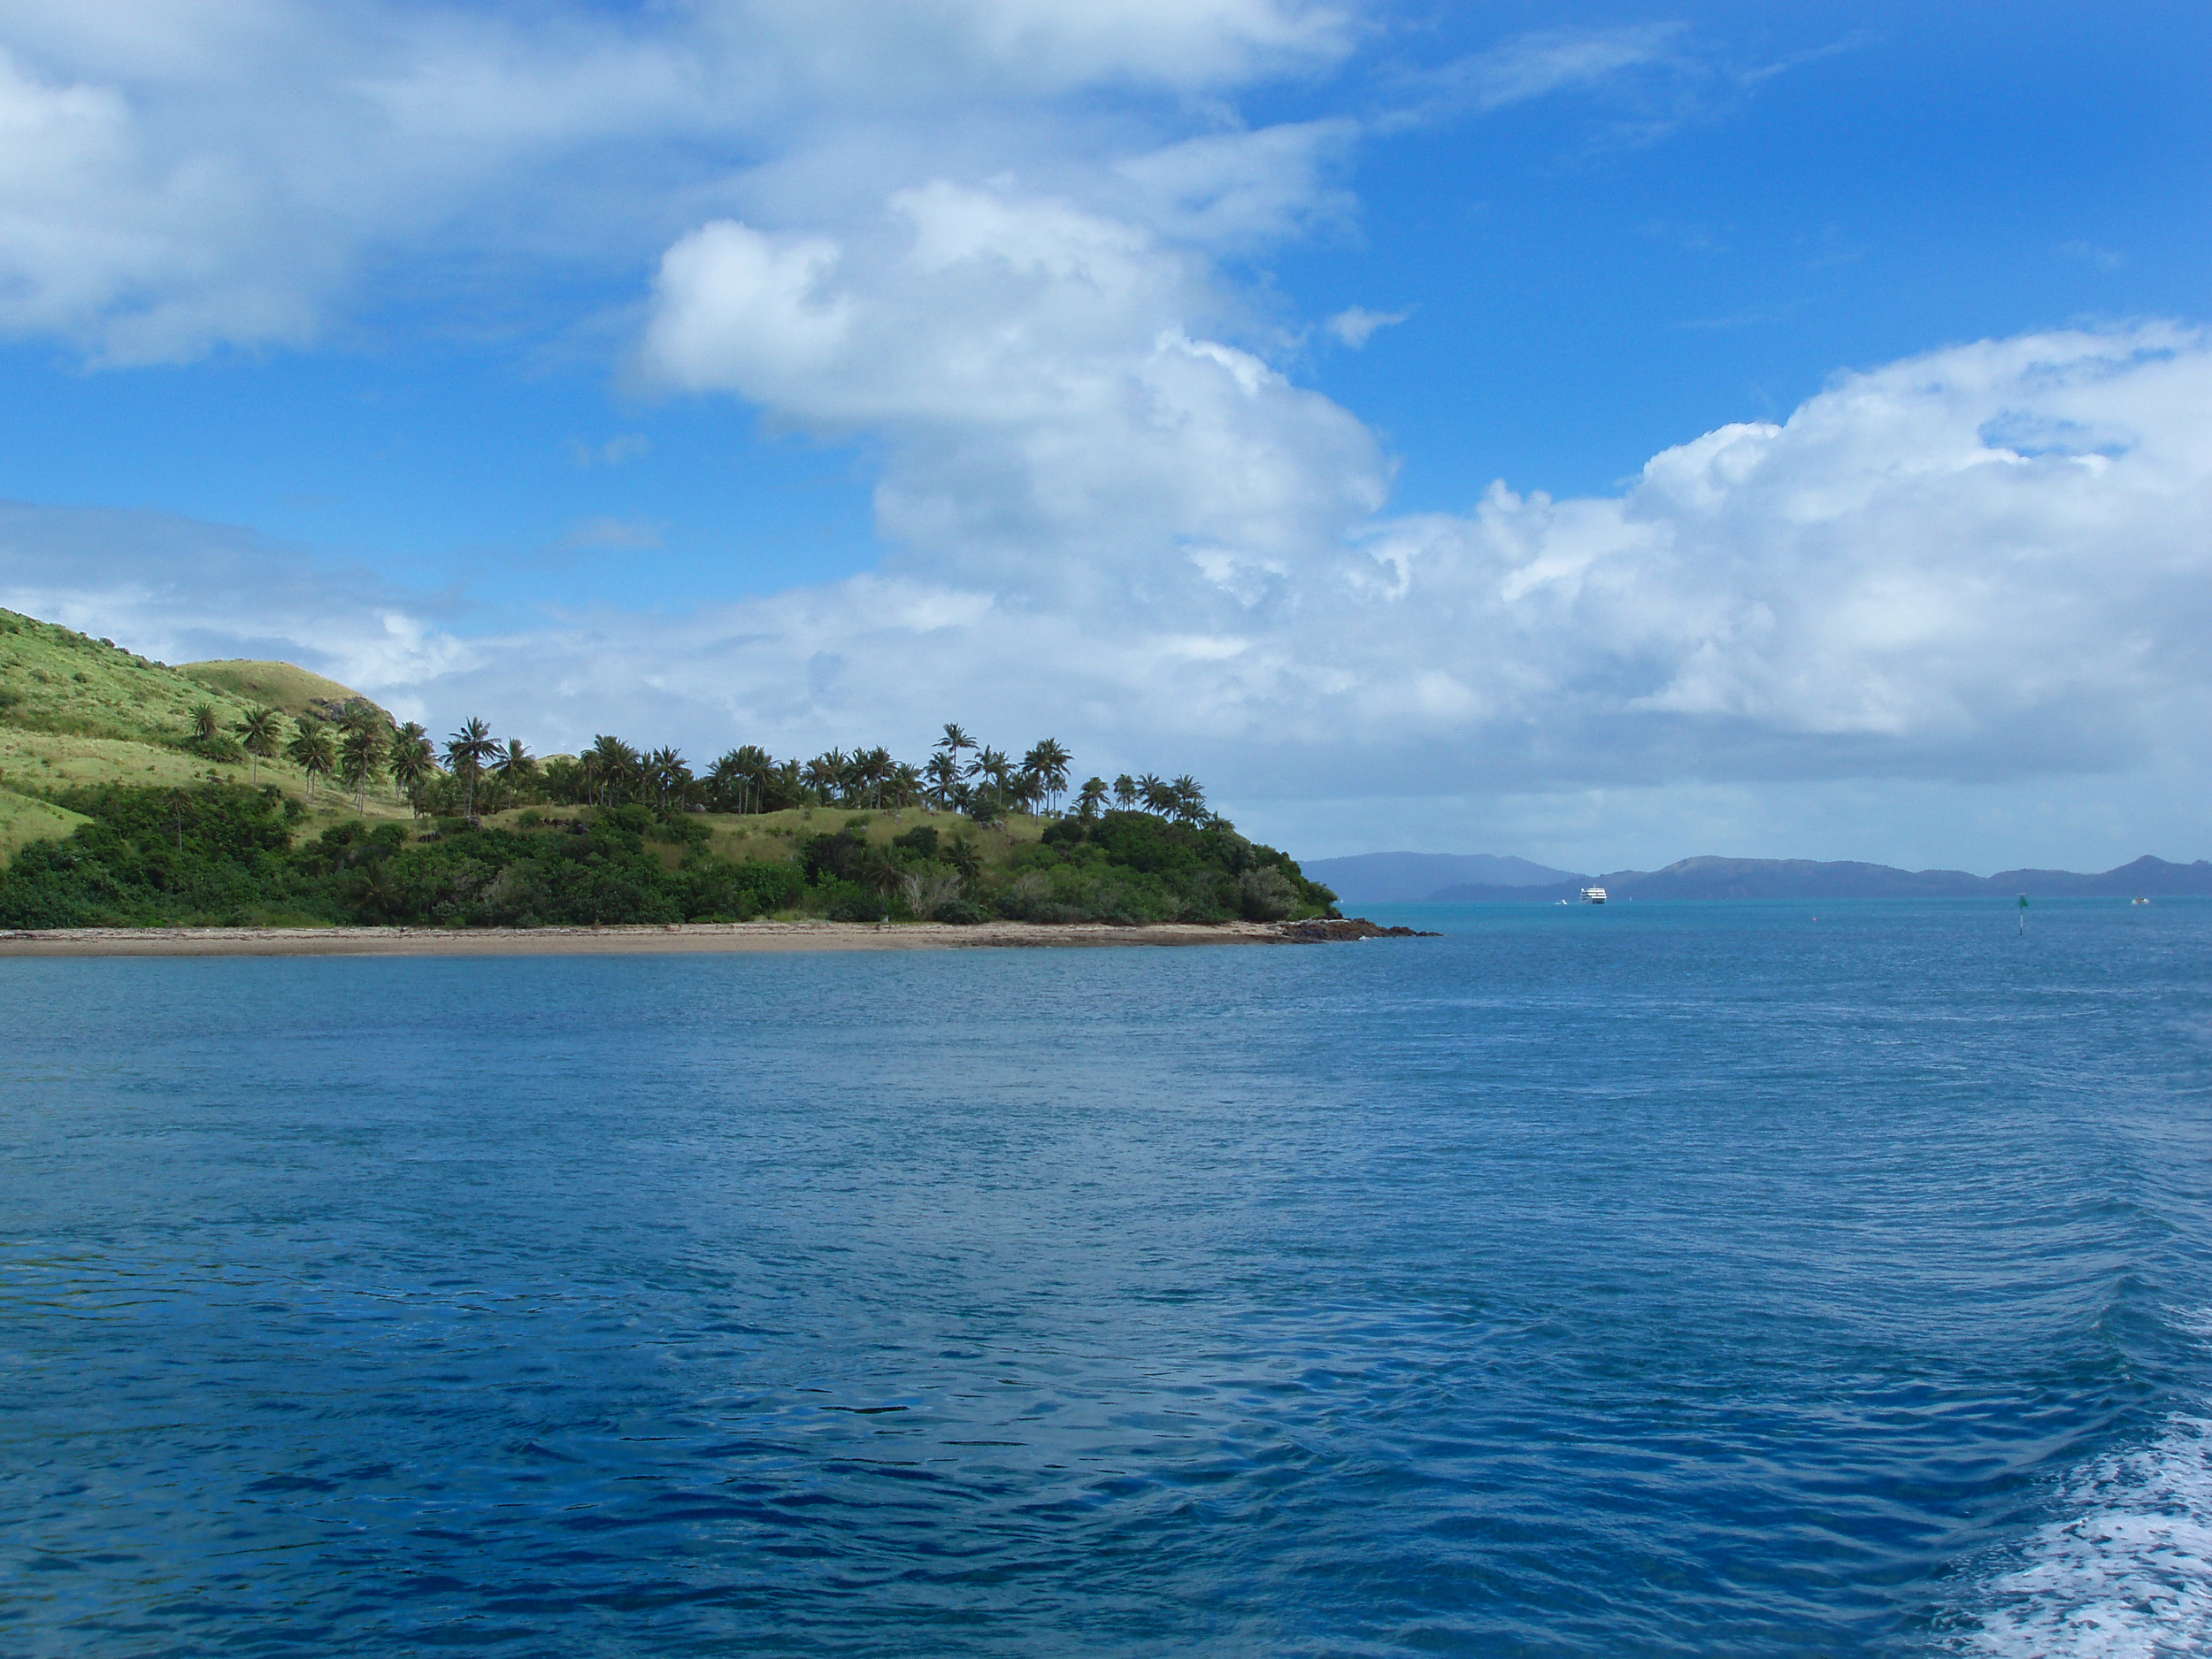 the side of dent island seen from the channel between hamilton island and dent island